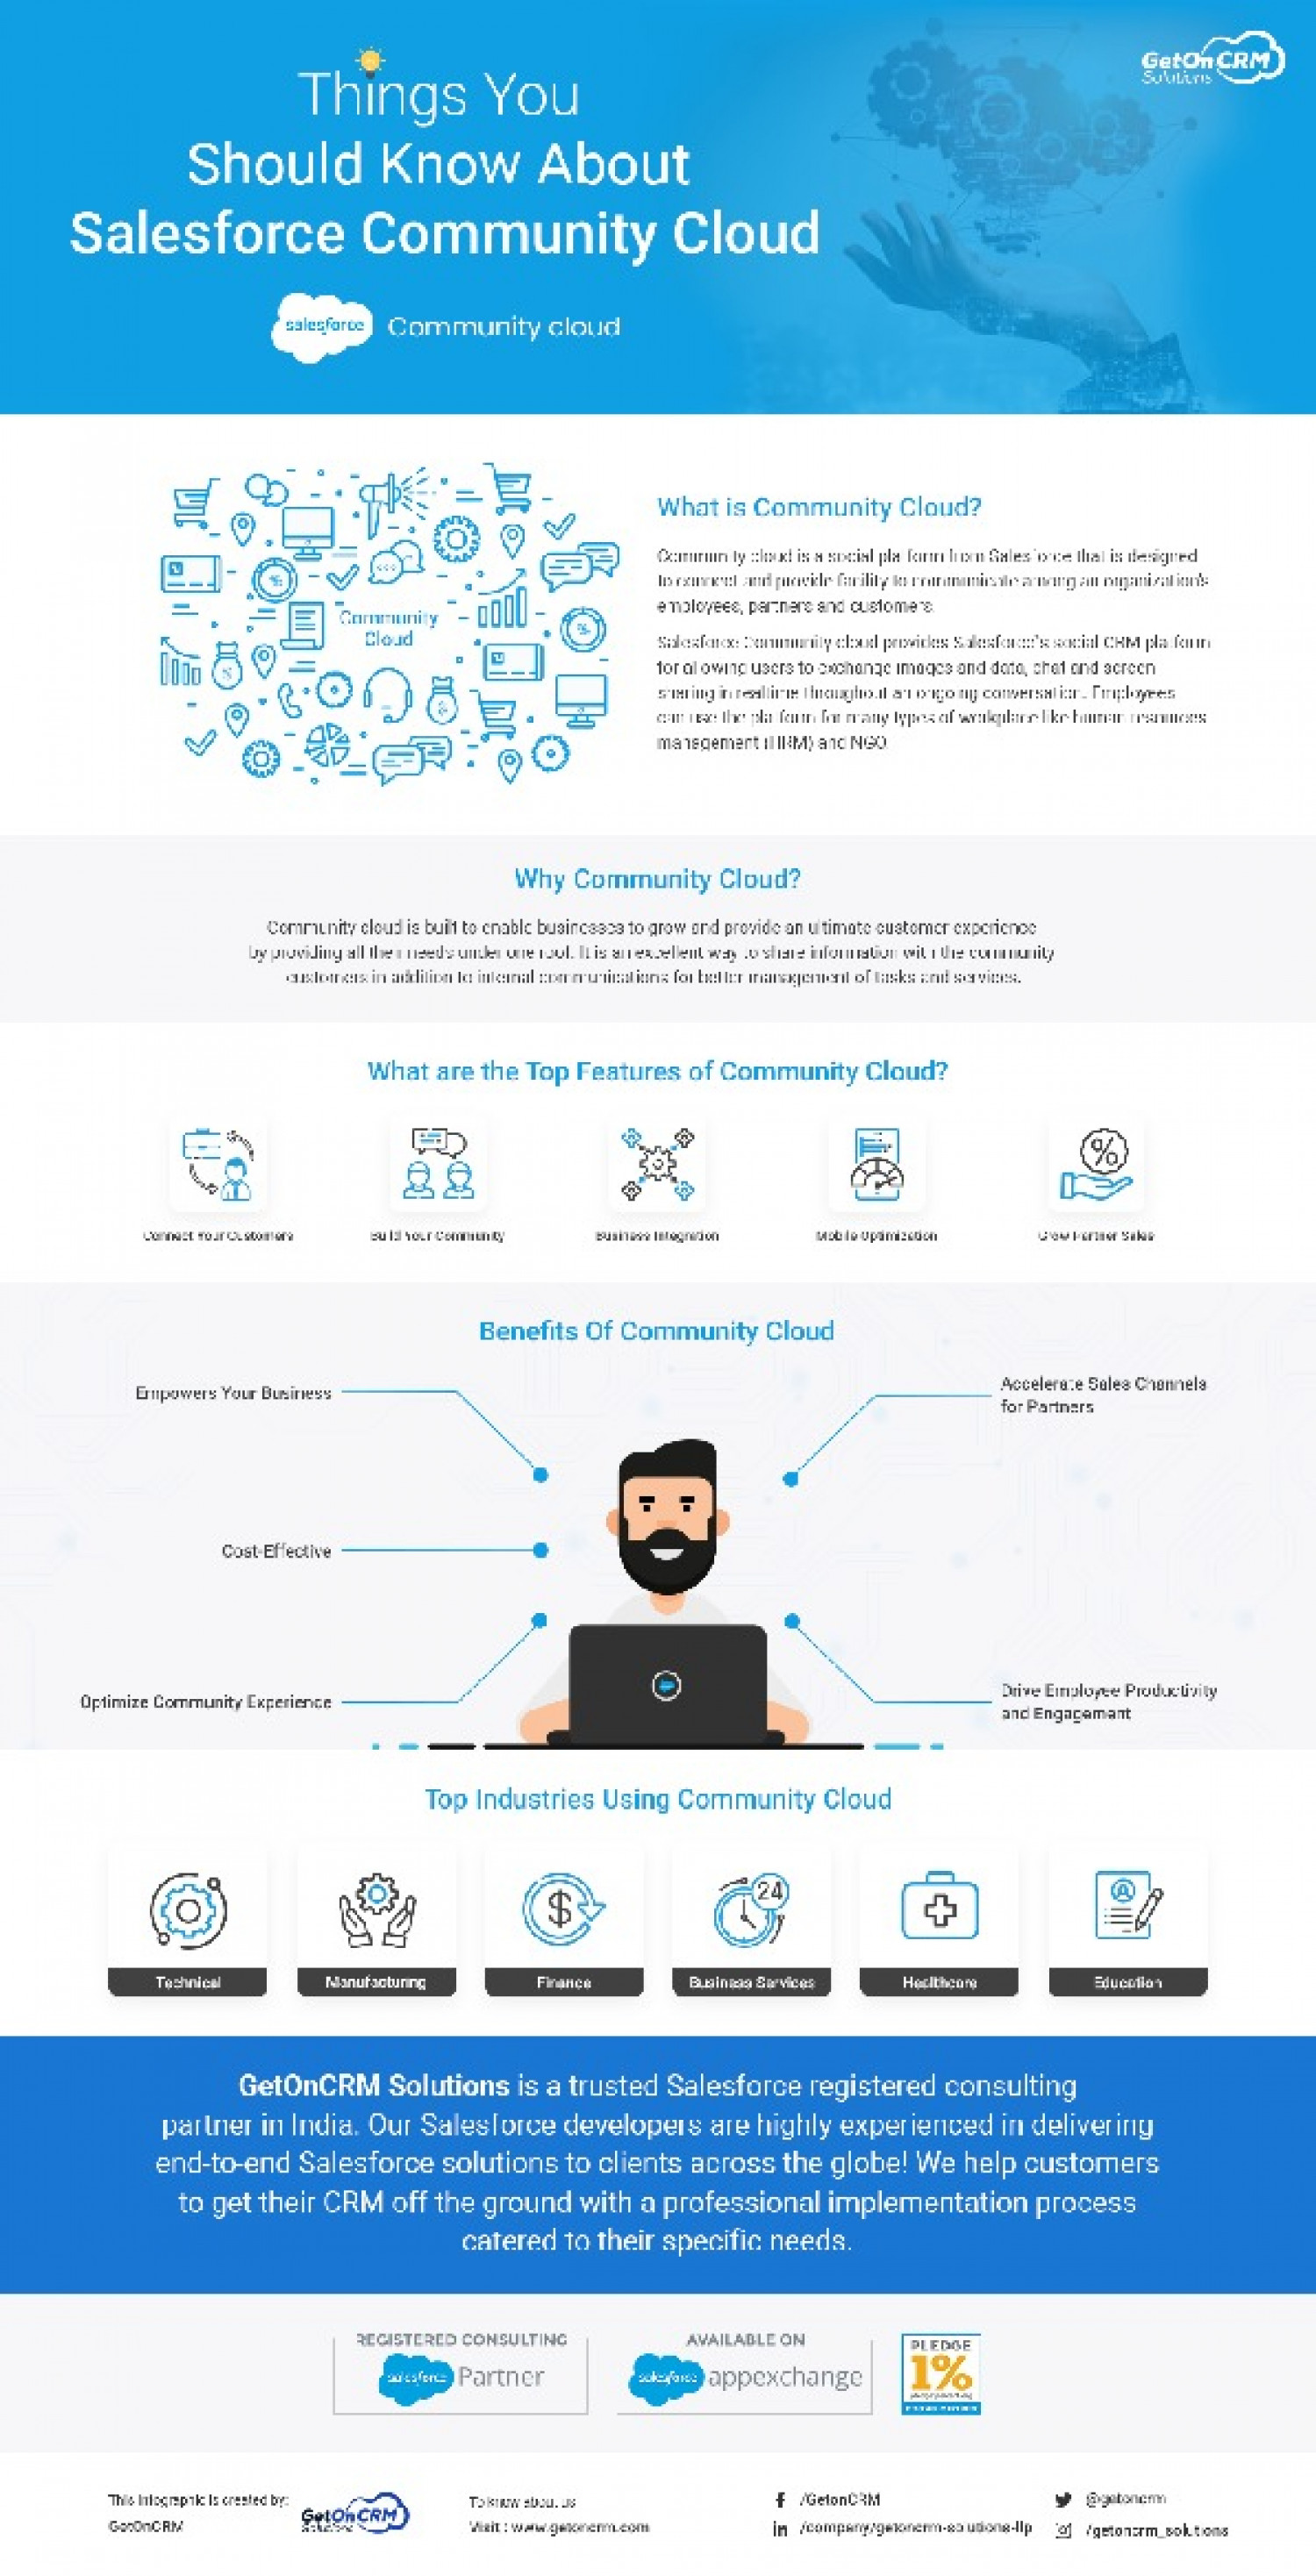 Thing You Should Know About Salesforce Community Cloud Infographic